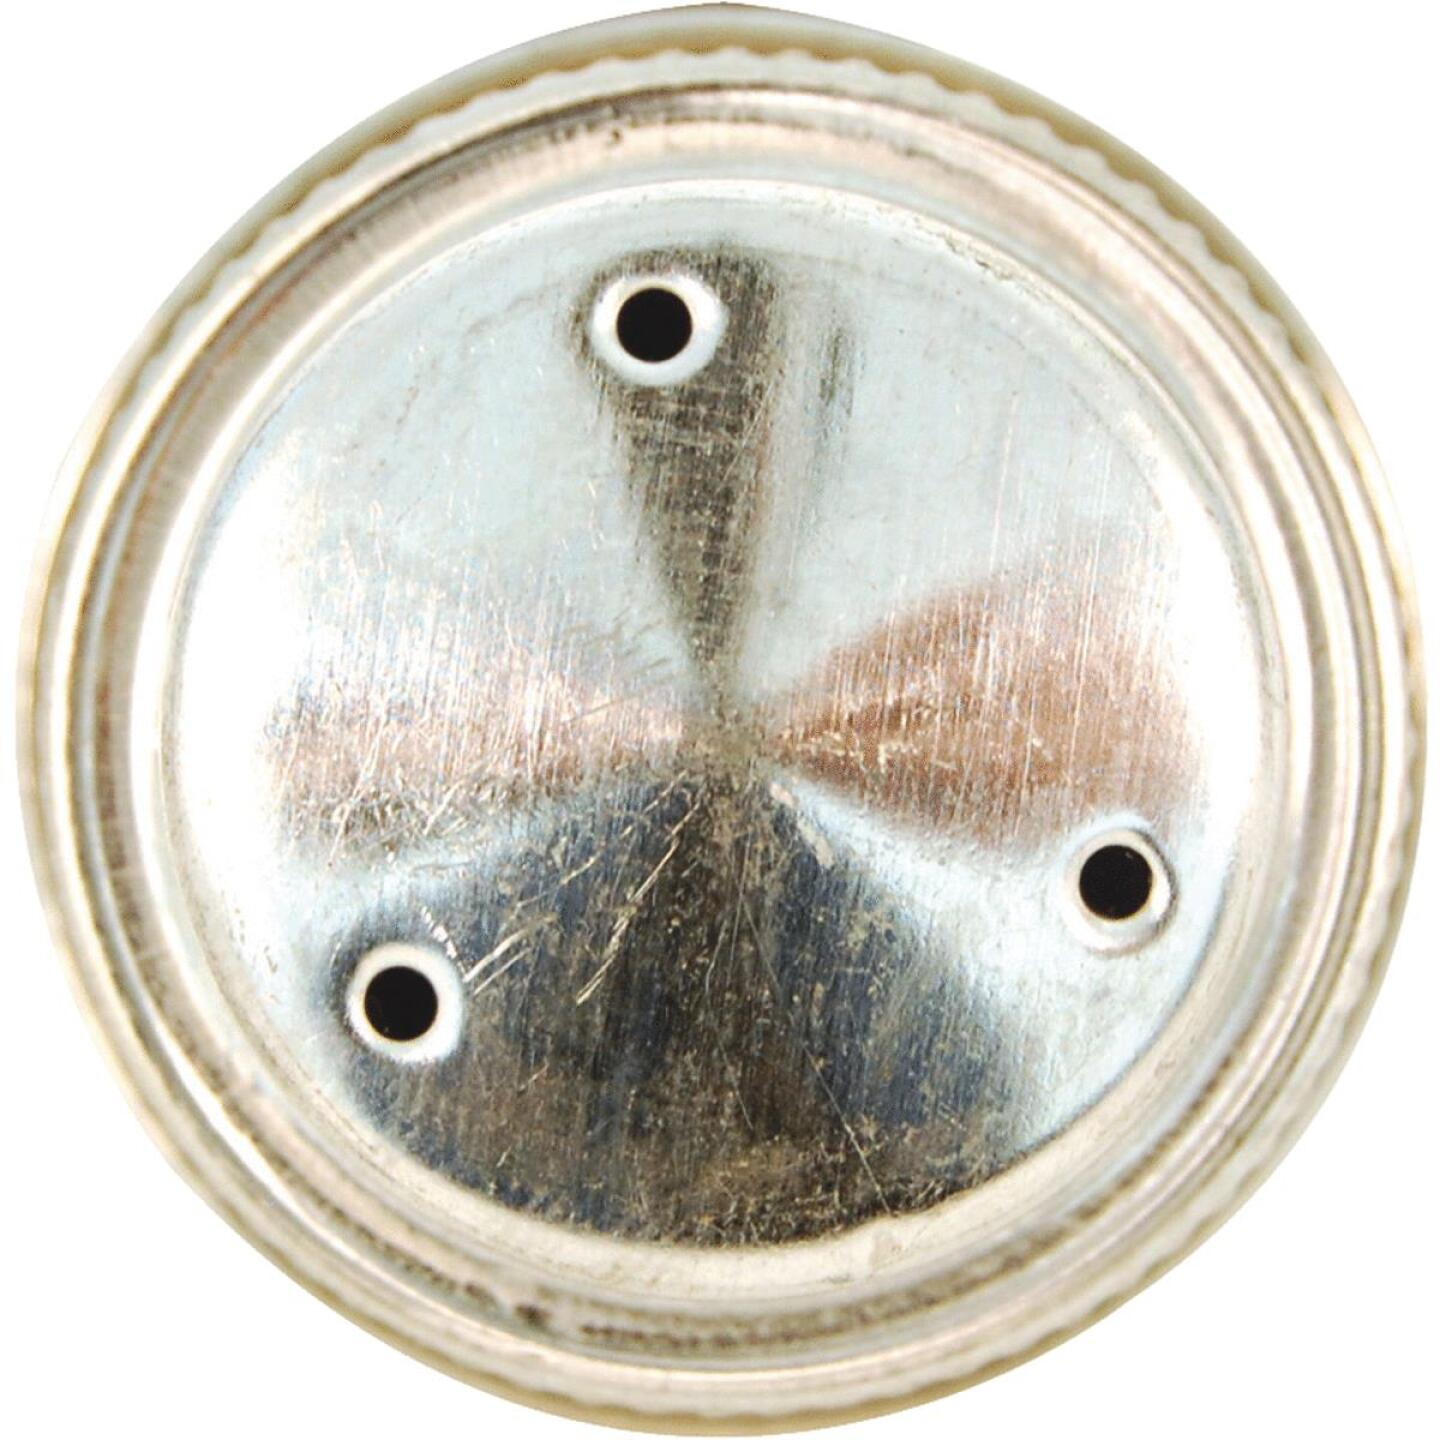 Arnold Briggs & Stratton 1-1/2 In. Vented Gas Cap Image 1